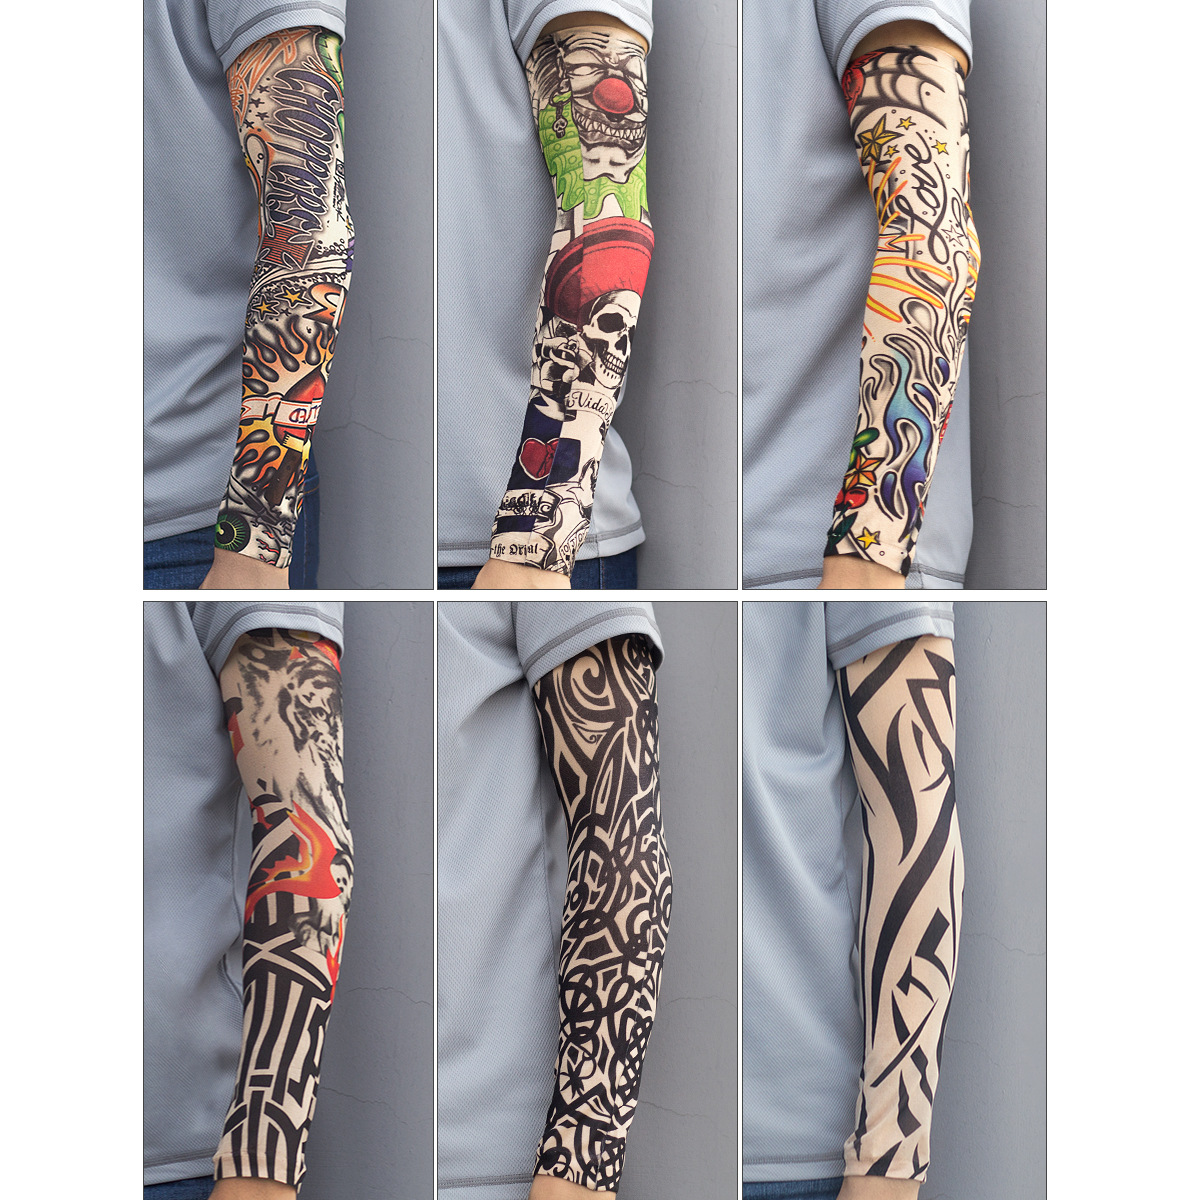 1pcs Tattoo Arm Warmers  Set Seamless Sleeve Men And Women Riding Driving Ice Silk Sunscreen Ice Sleeve